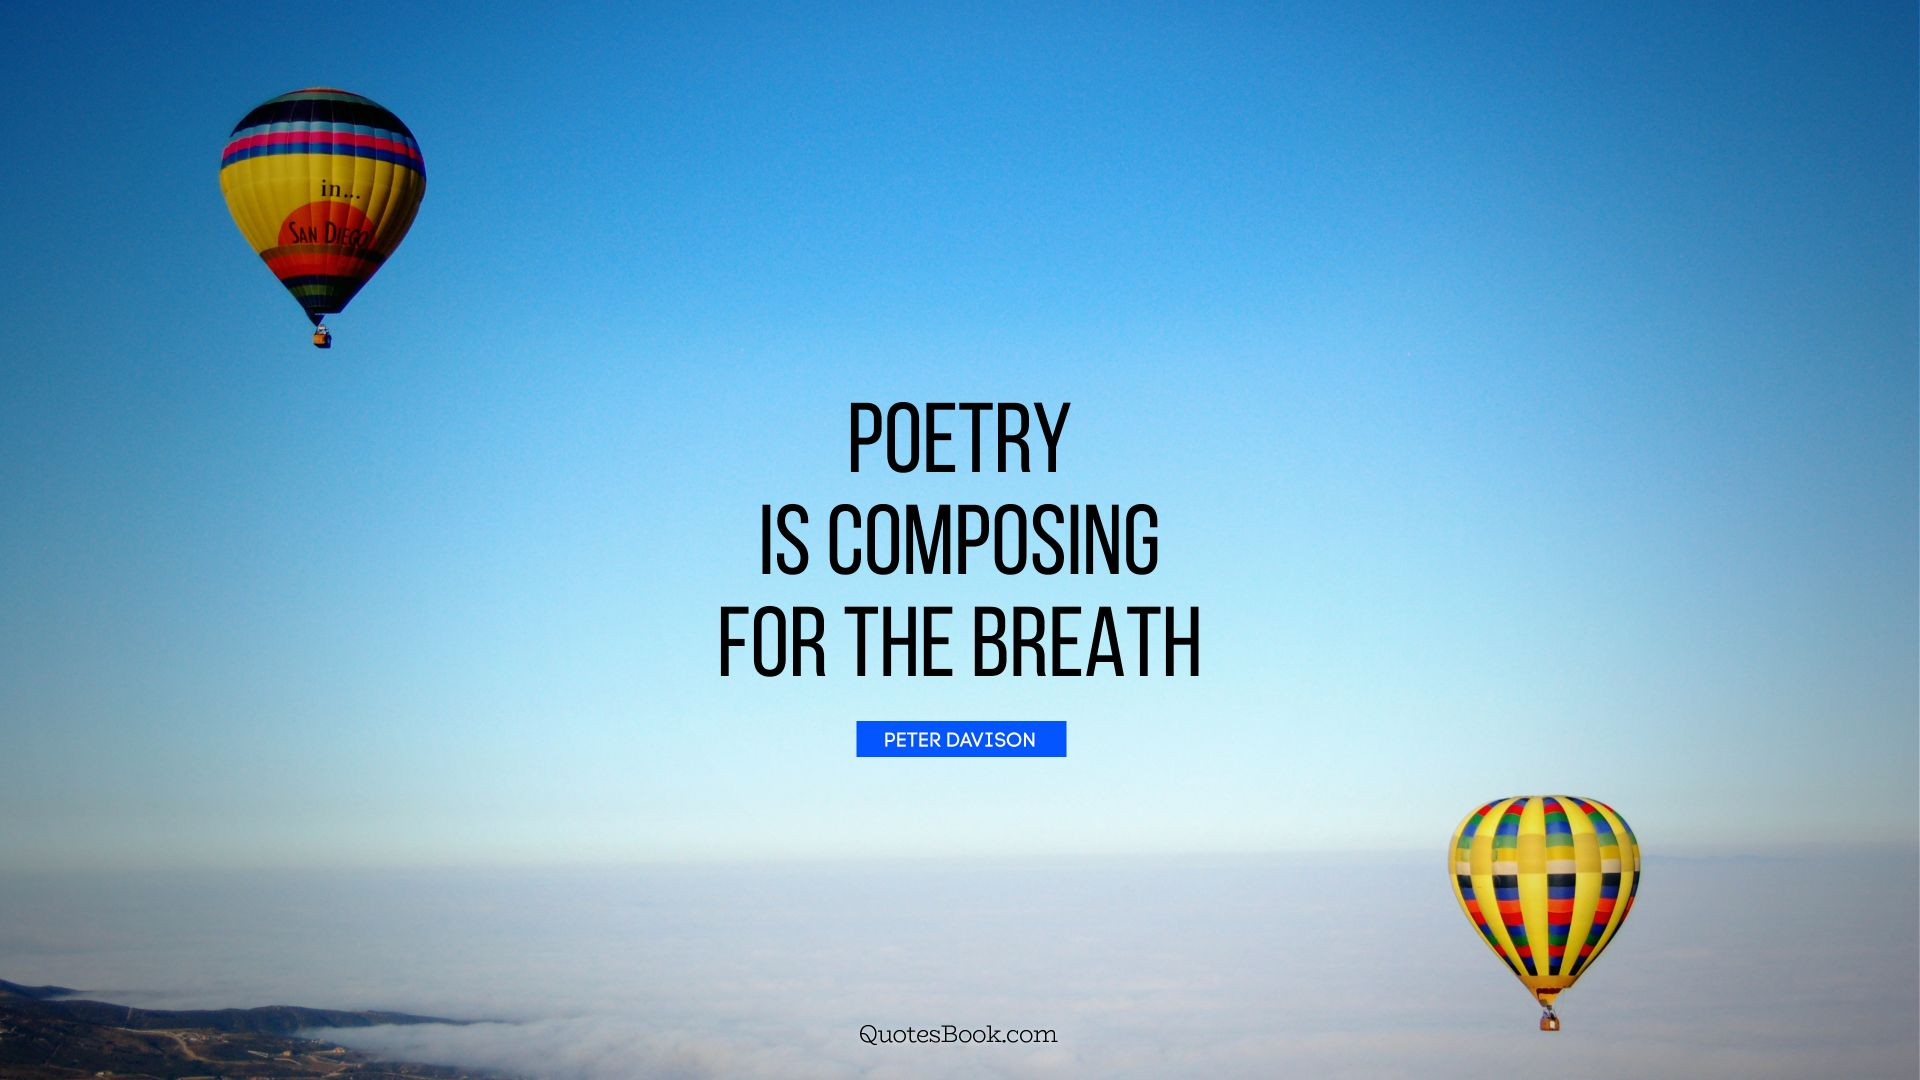 Poetry is composing for the breath. - Quote by Peter Davison